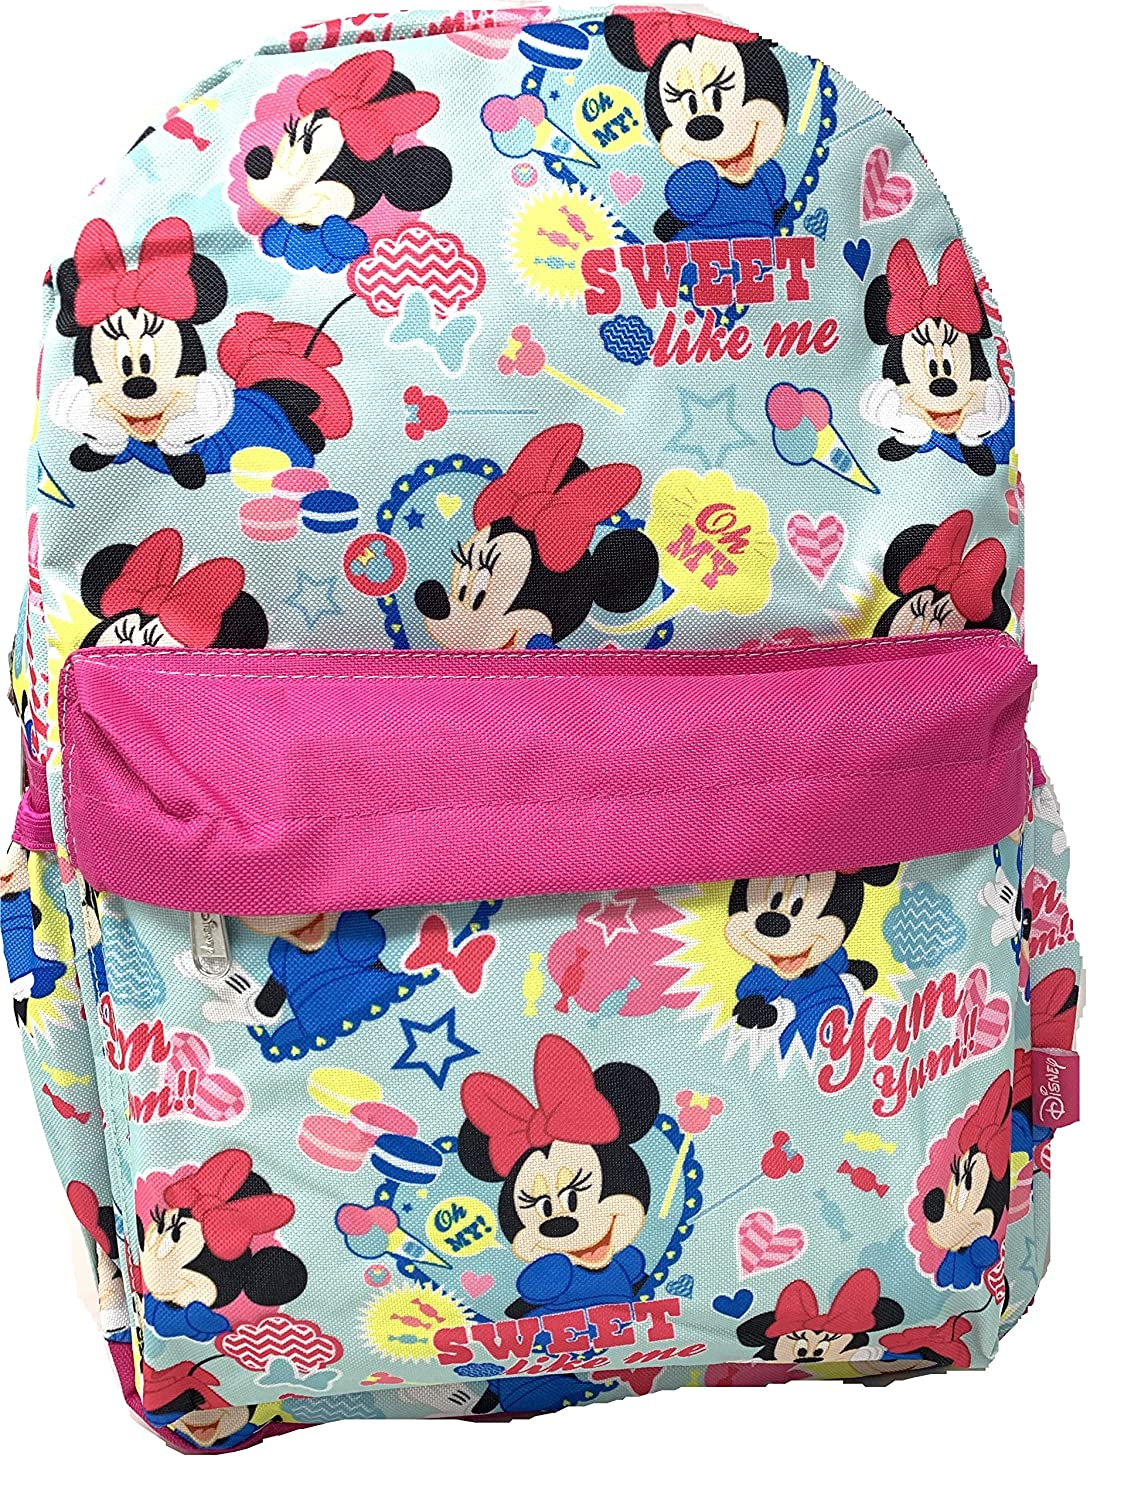 Disney Minnie Mouse Allover PrintSWEET LIKE ME 16 Backpack For Girls